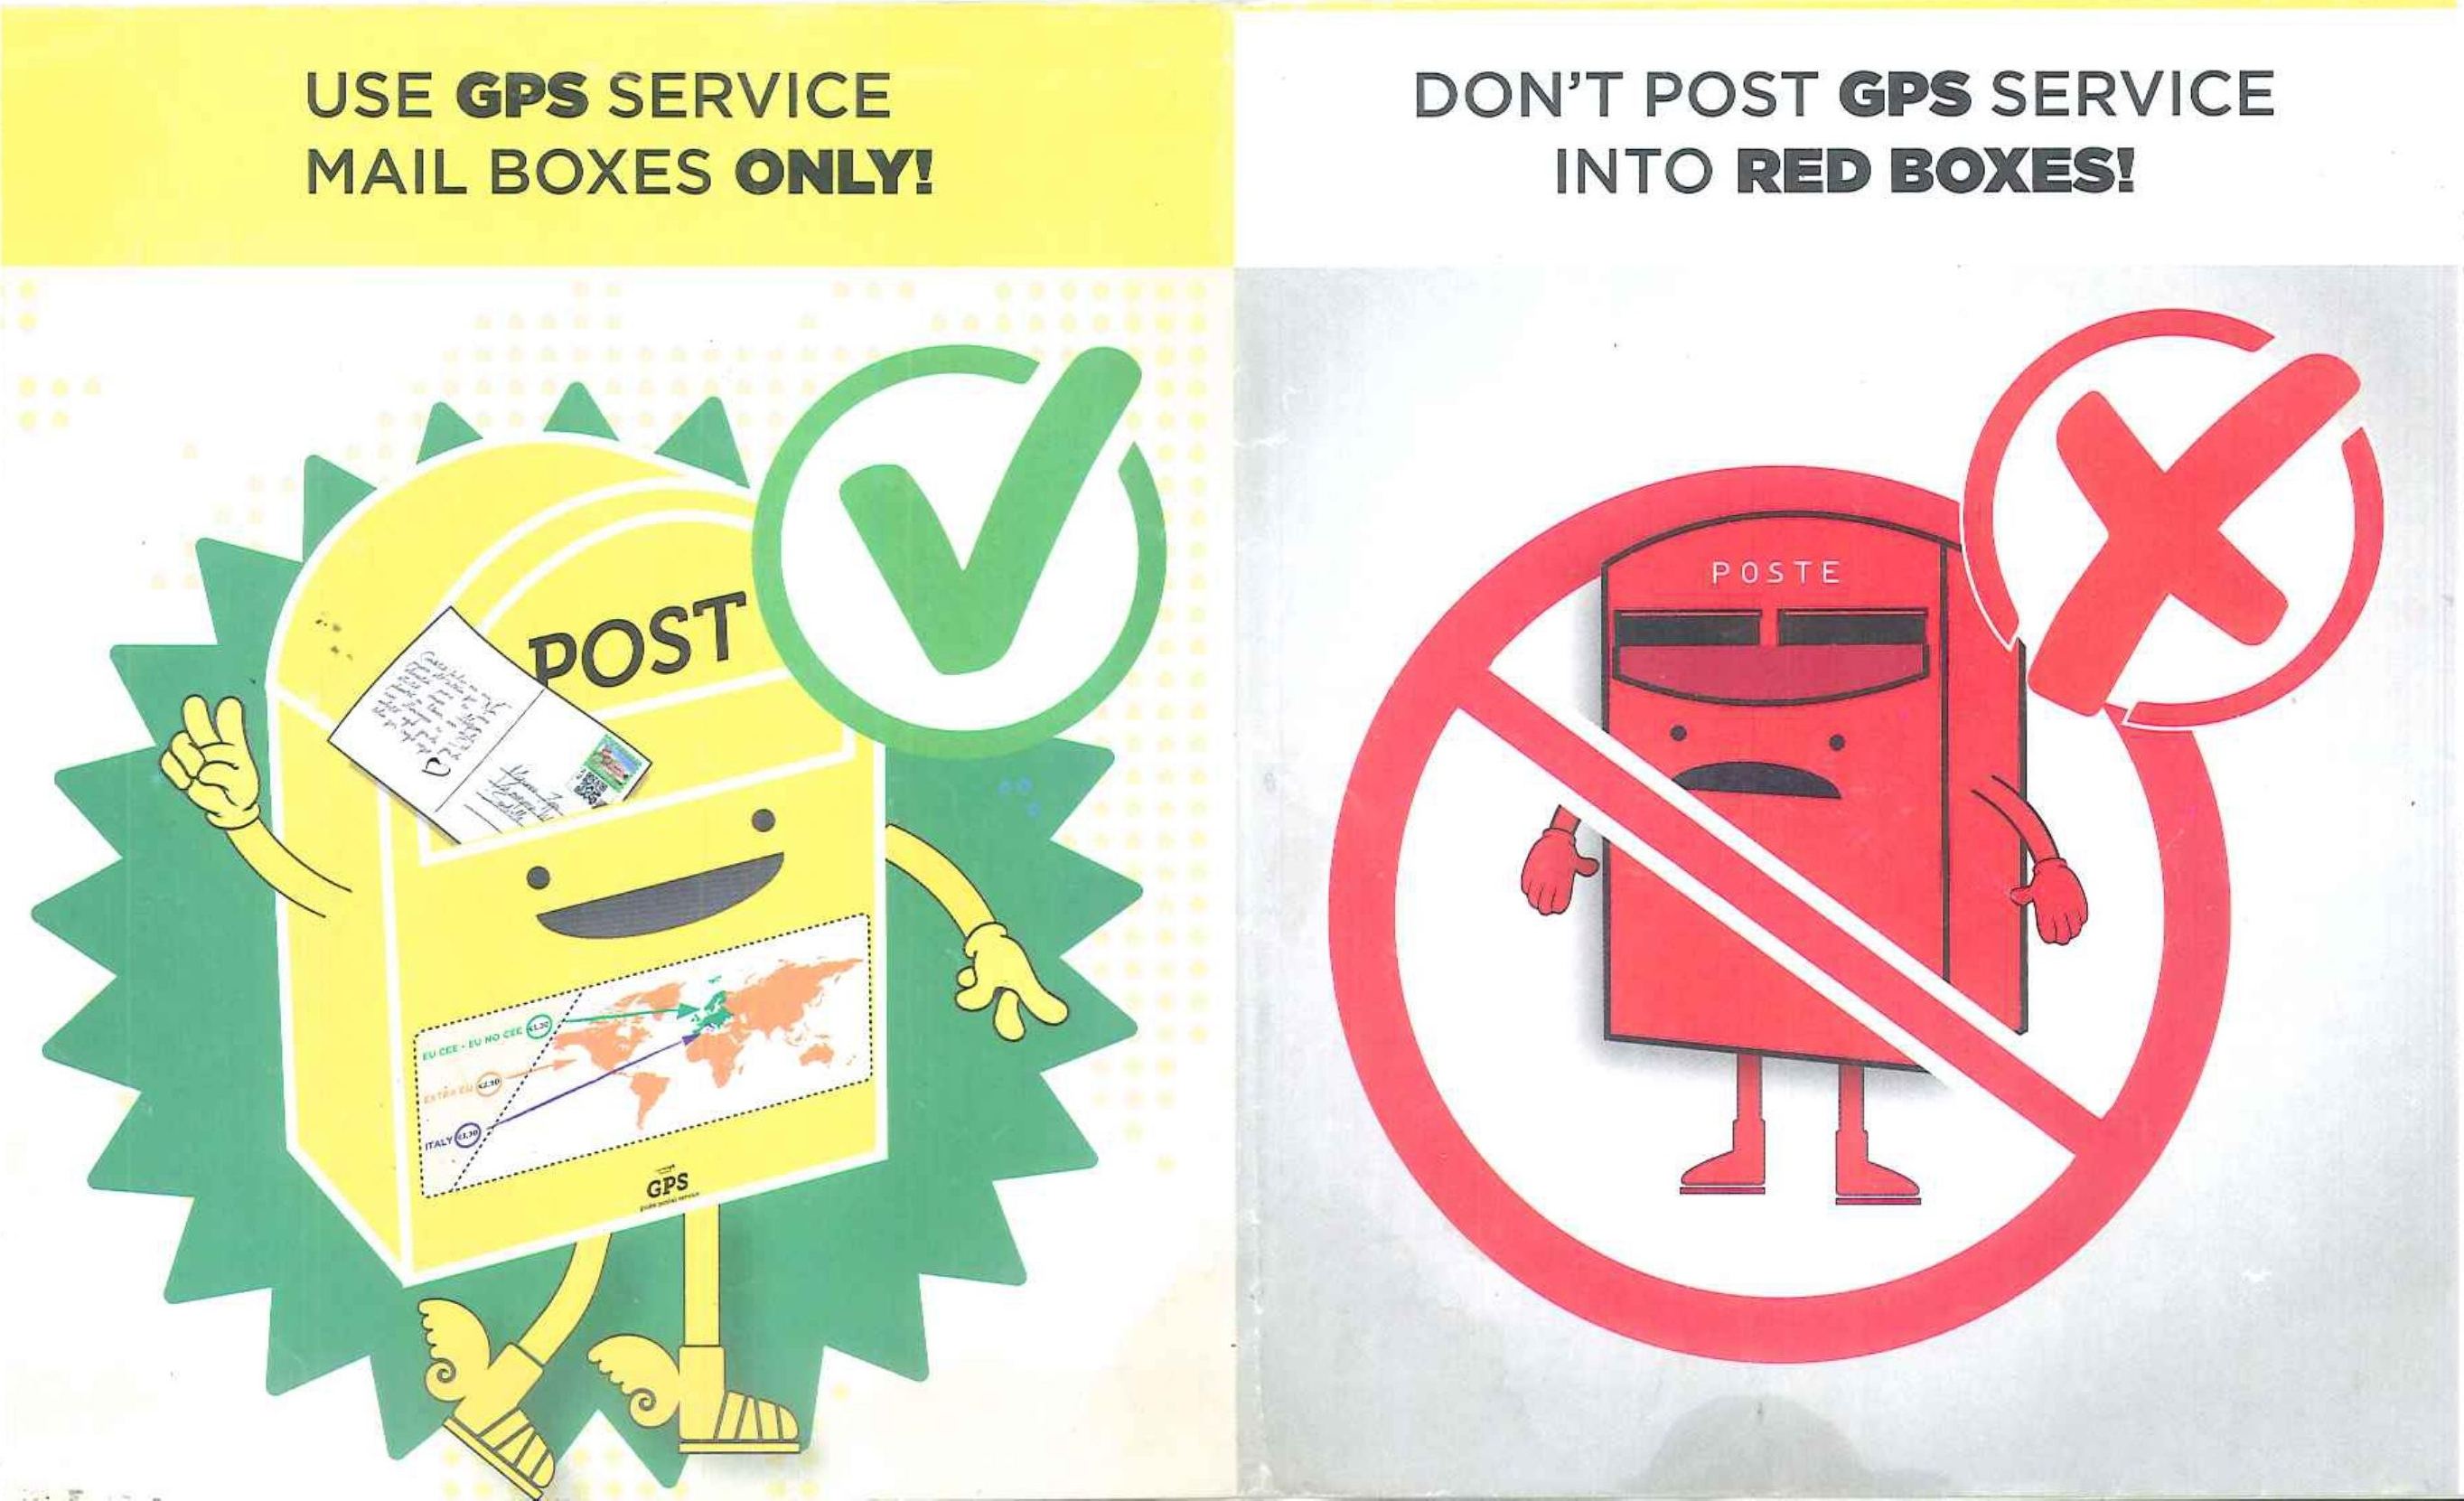 GPS post mail boxes